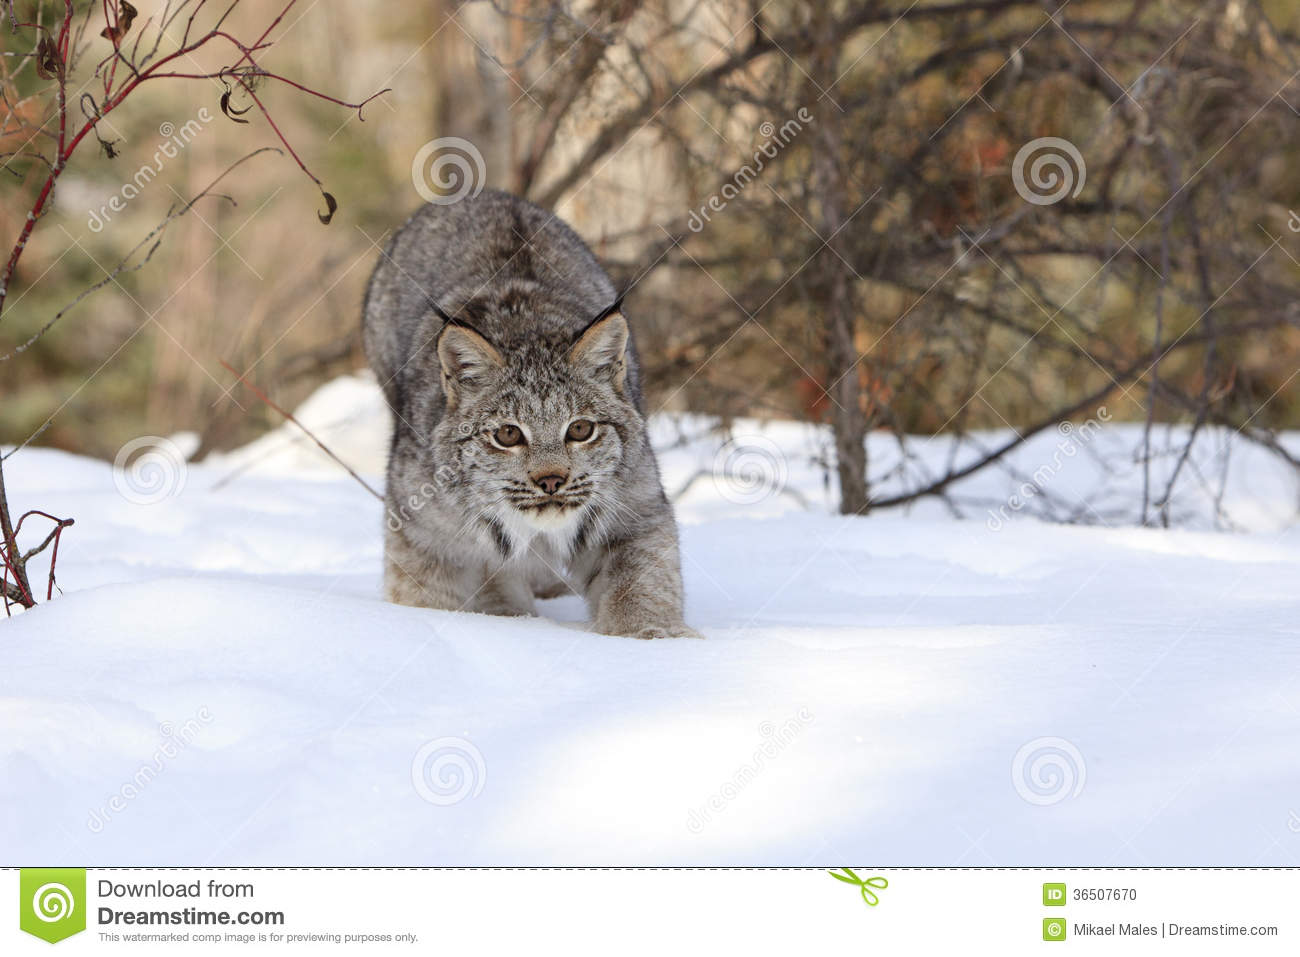 Bobcat in stealth mode hunting prey in snow in mountains